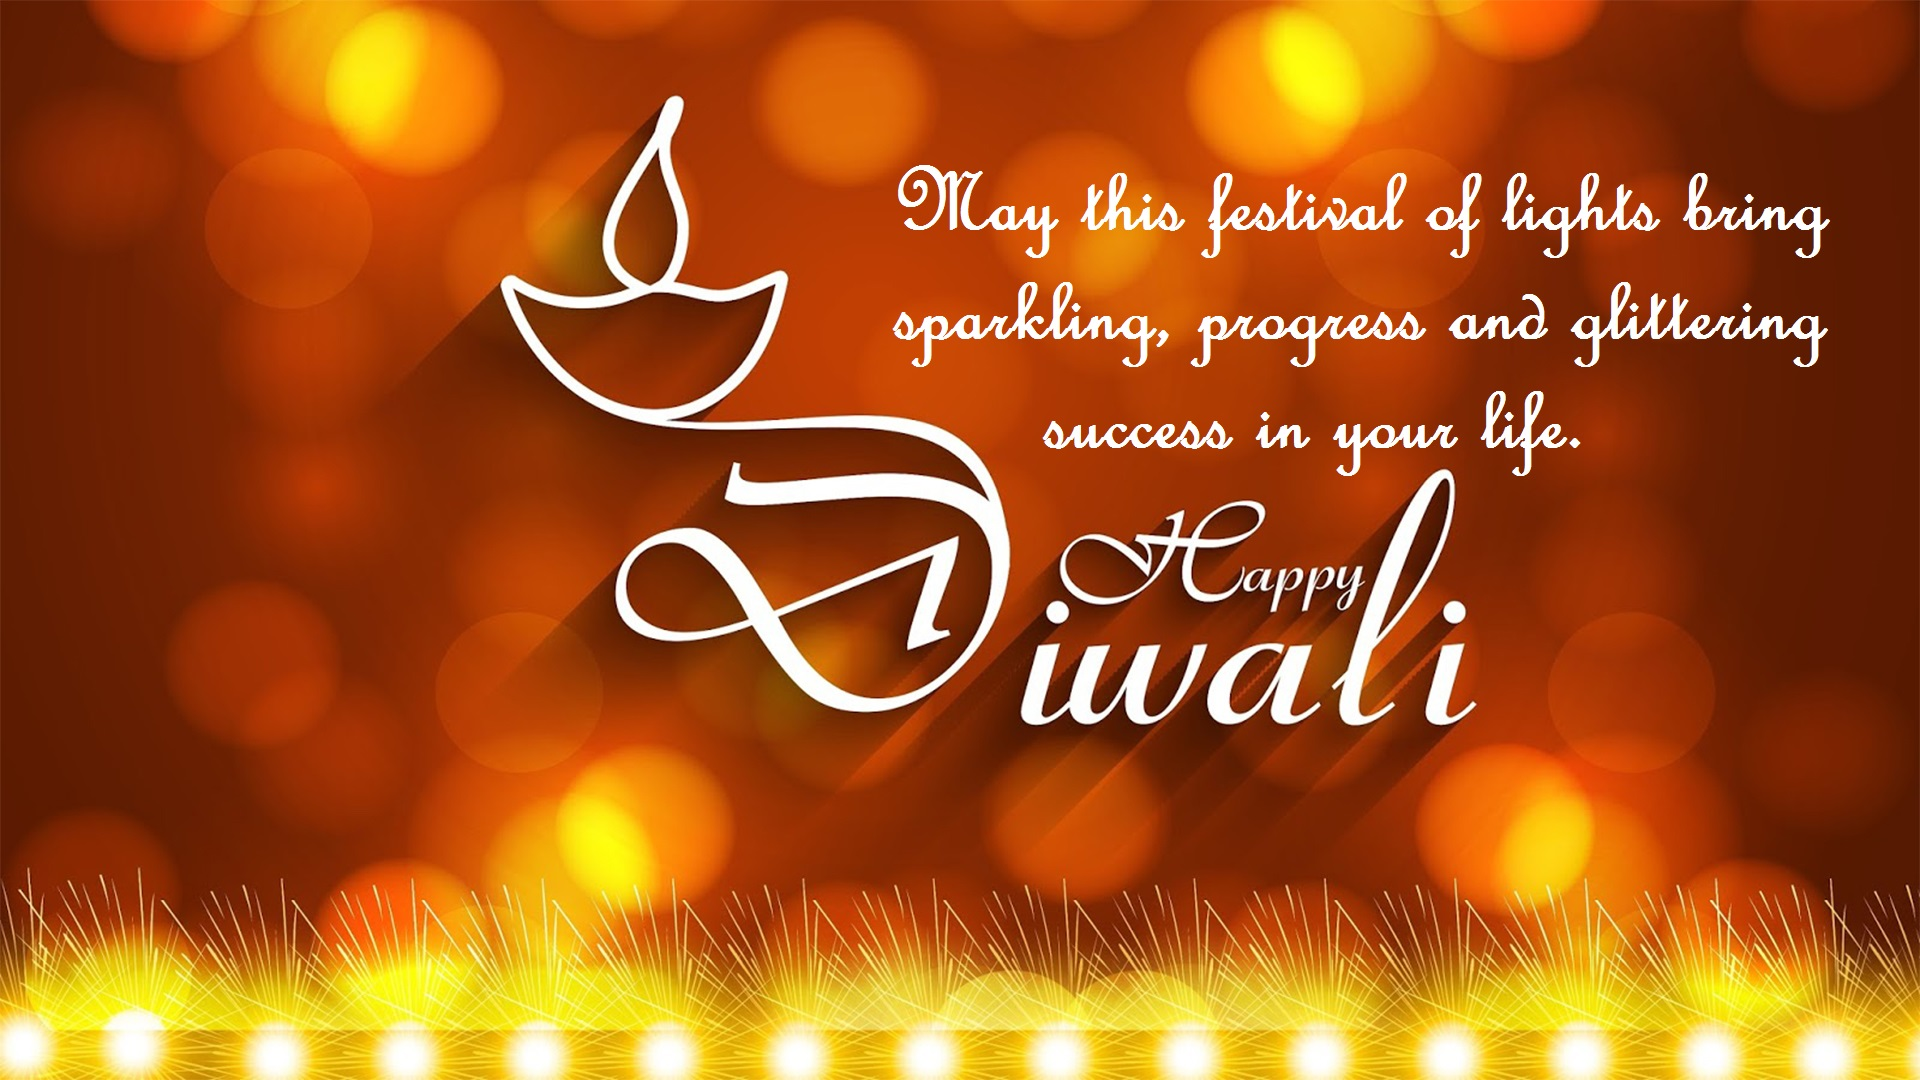 Happy Diwali Wishes Greetings Messages Images Deepavali Wishes